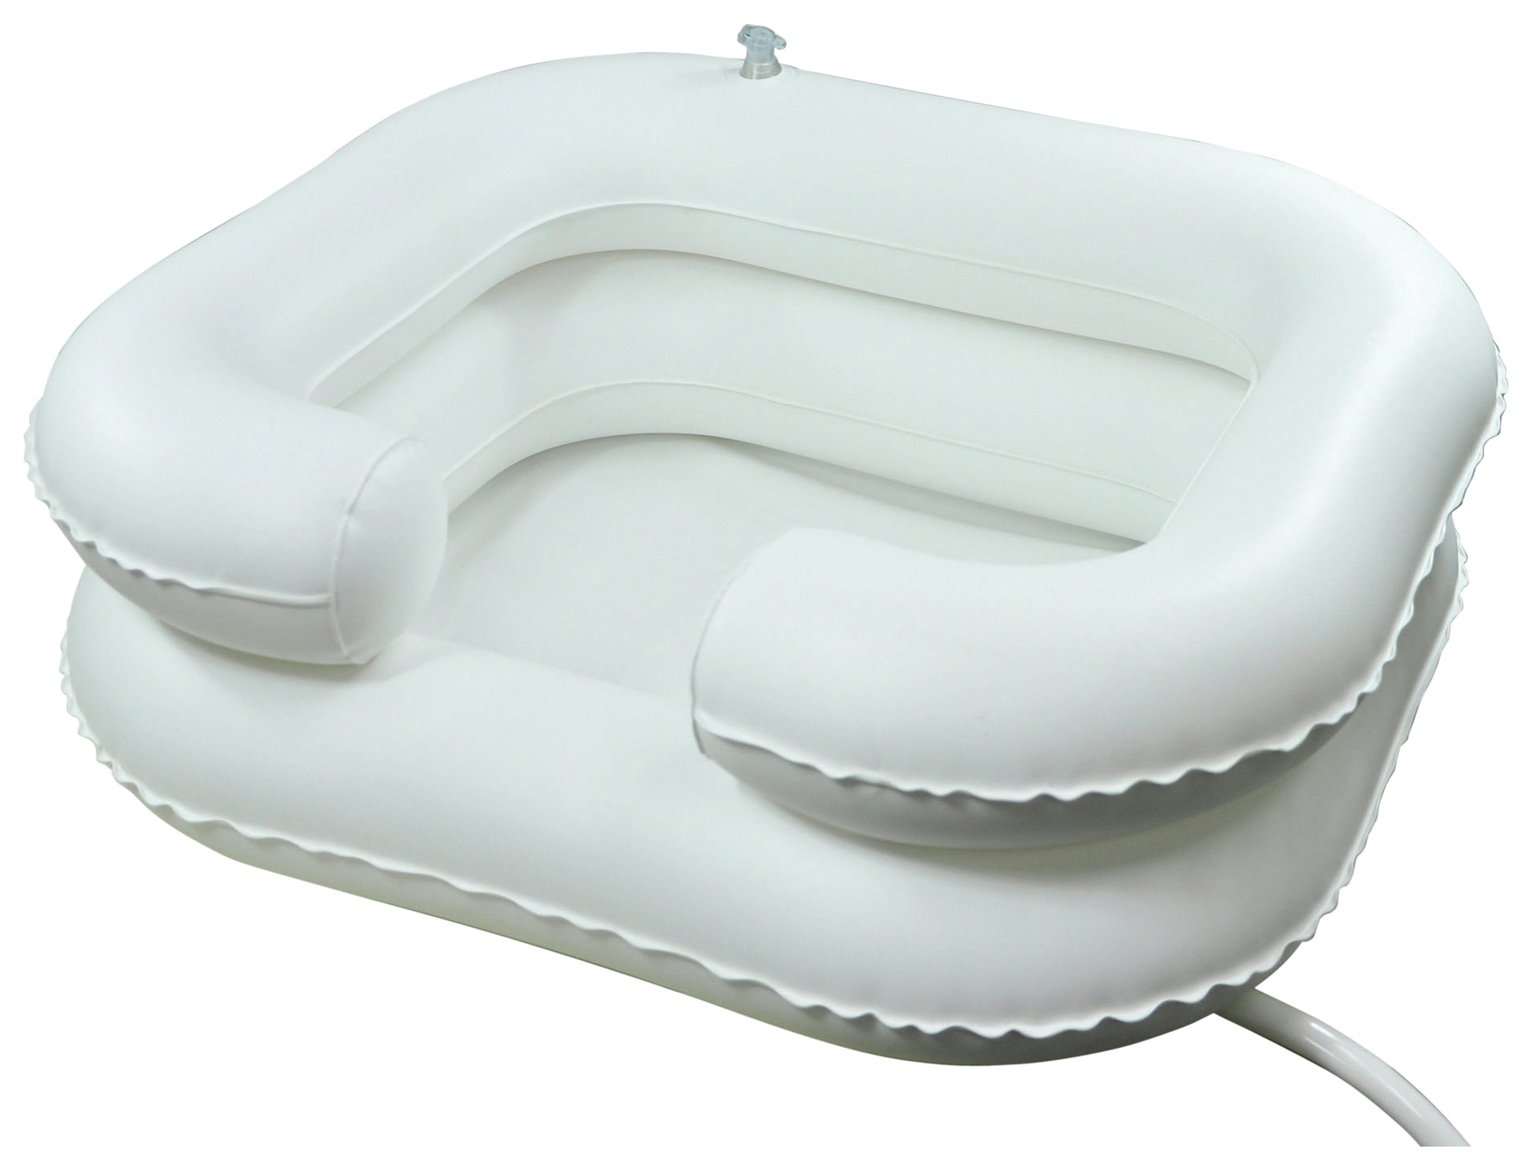 Image of Aidapt Inflatable Basin